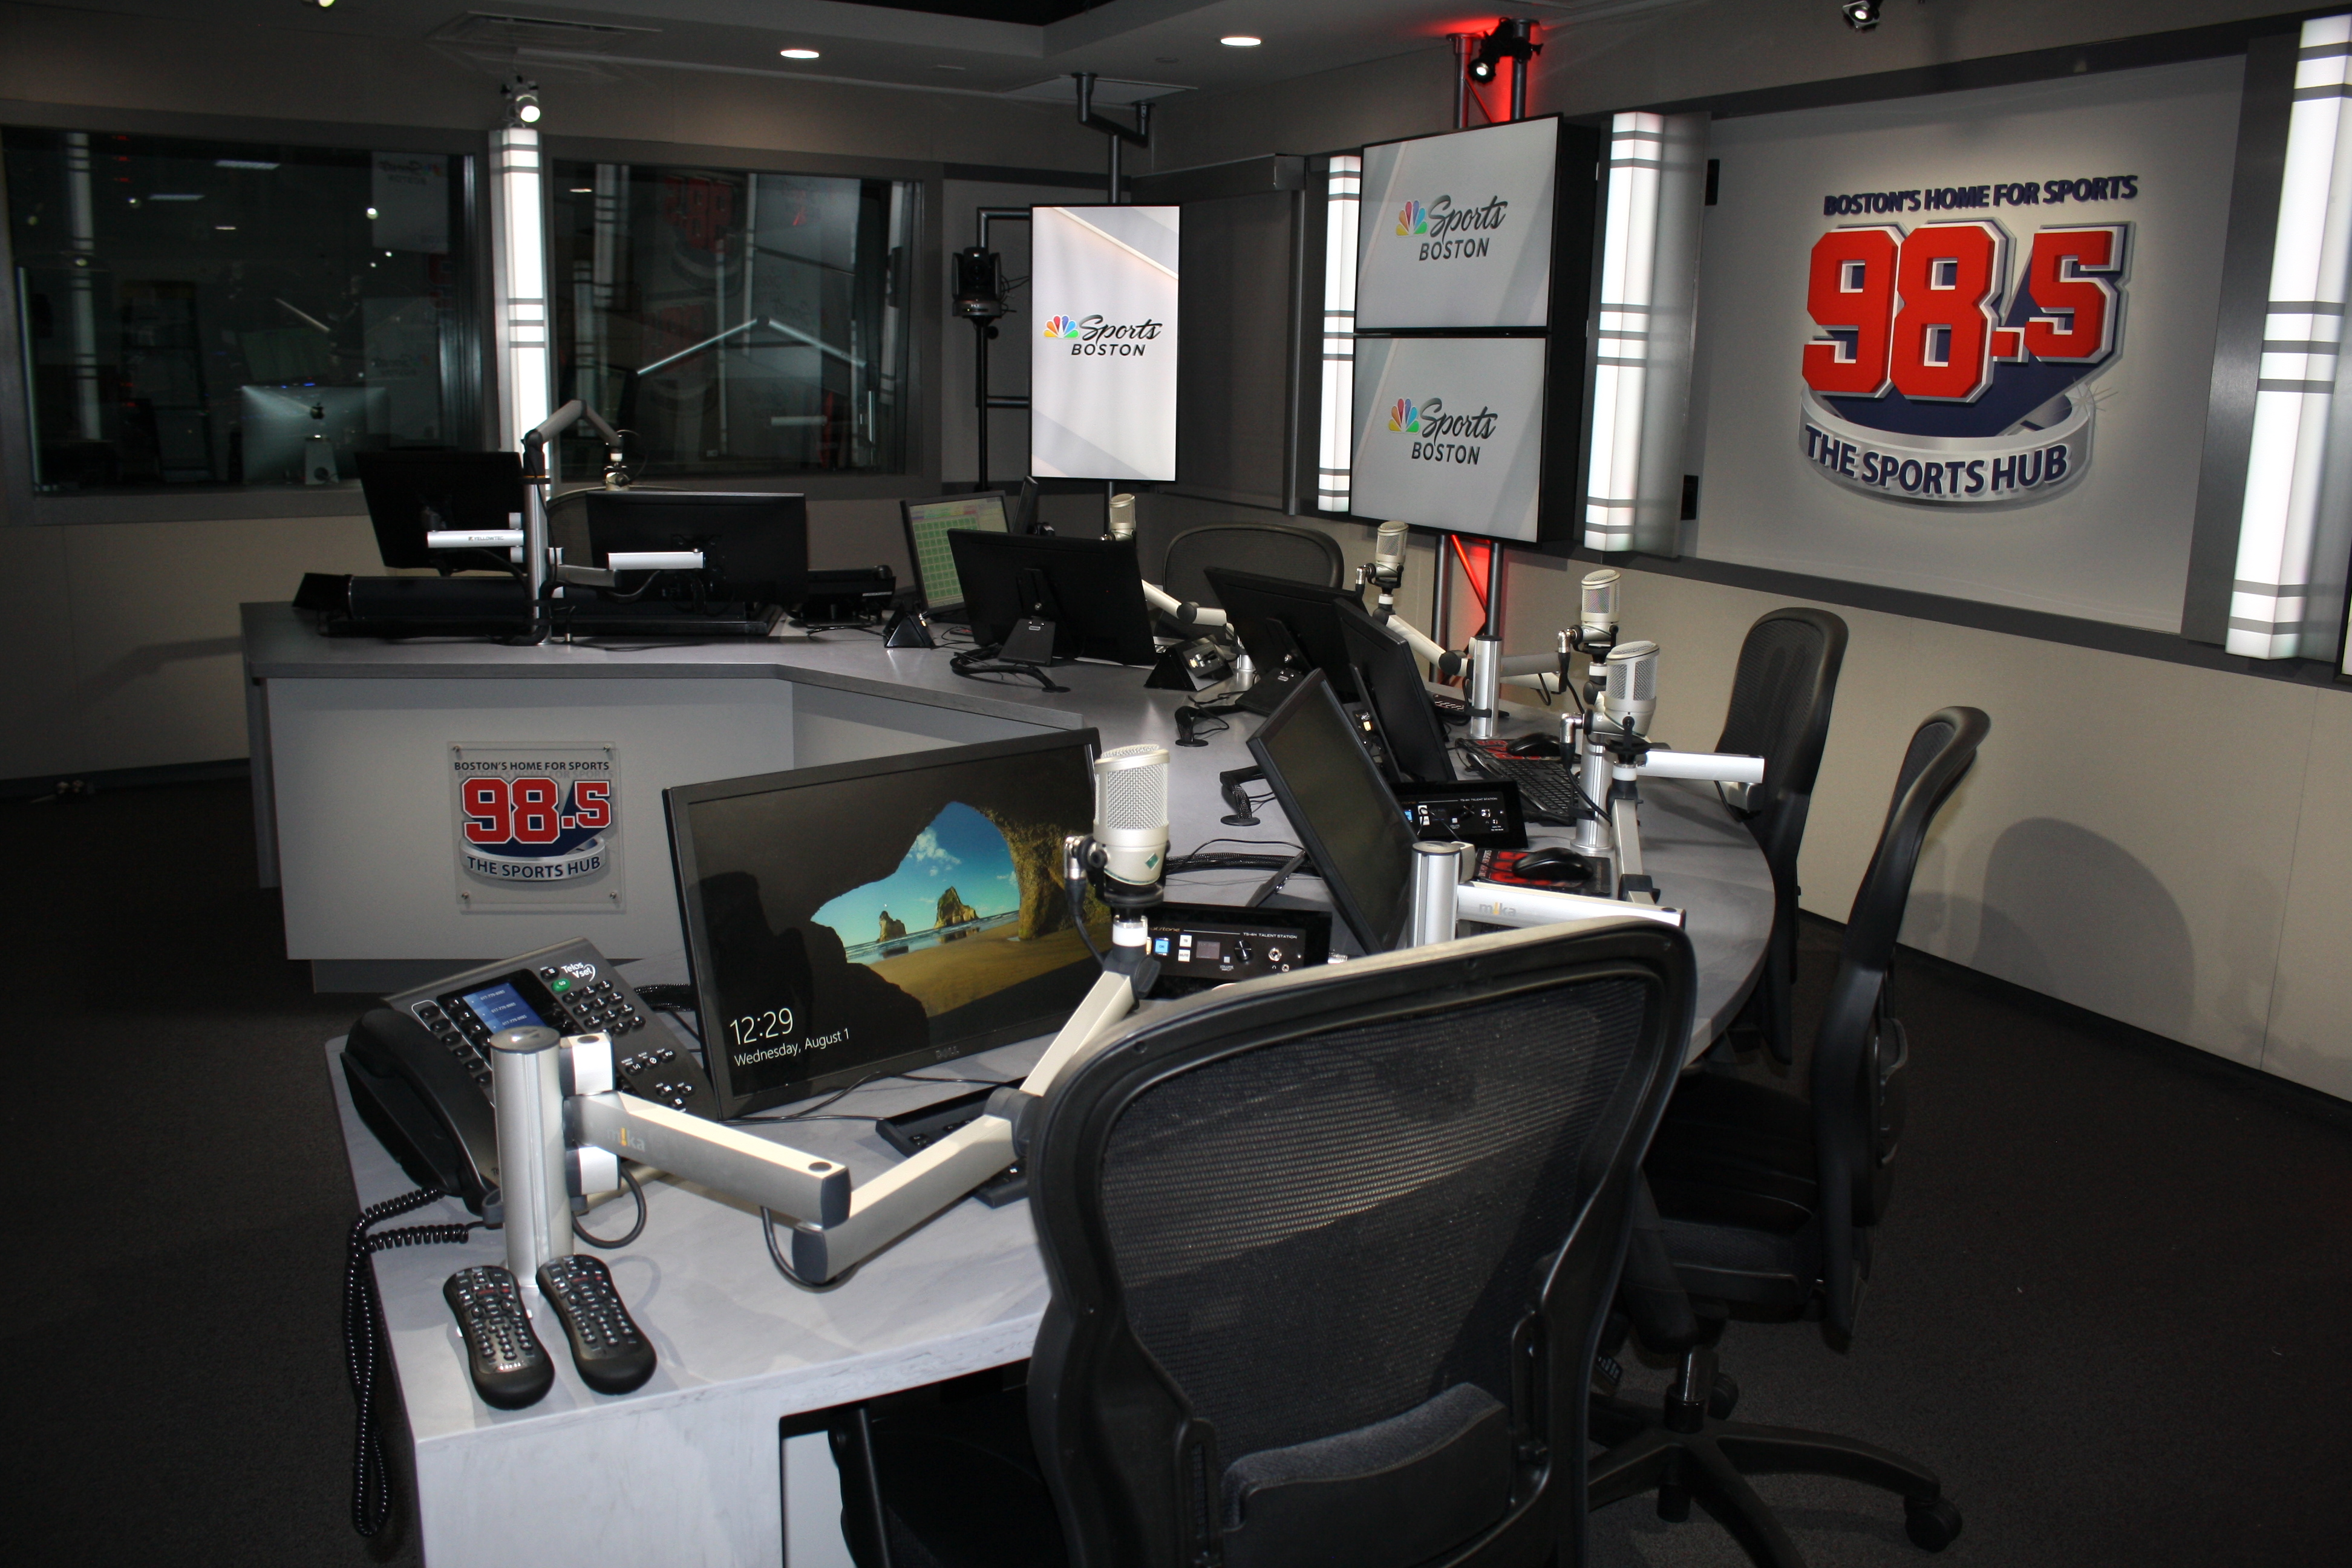 Image of 98.5